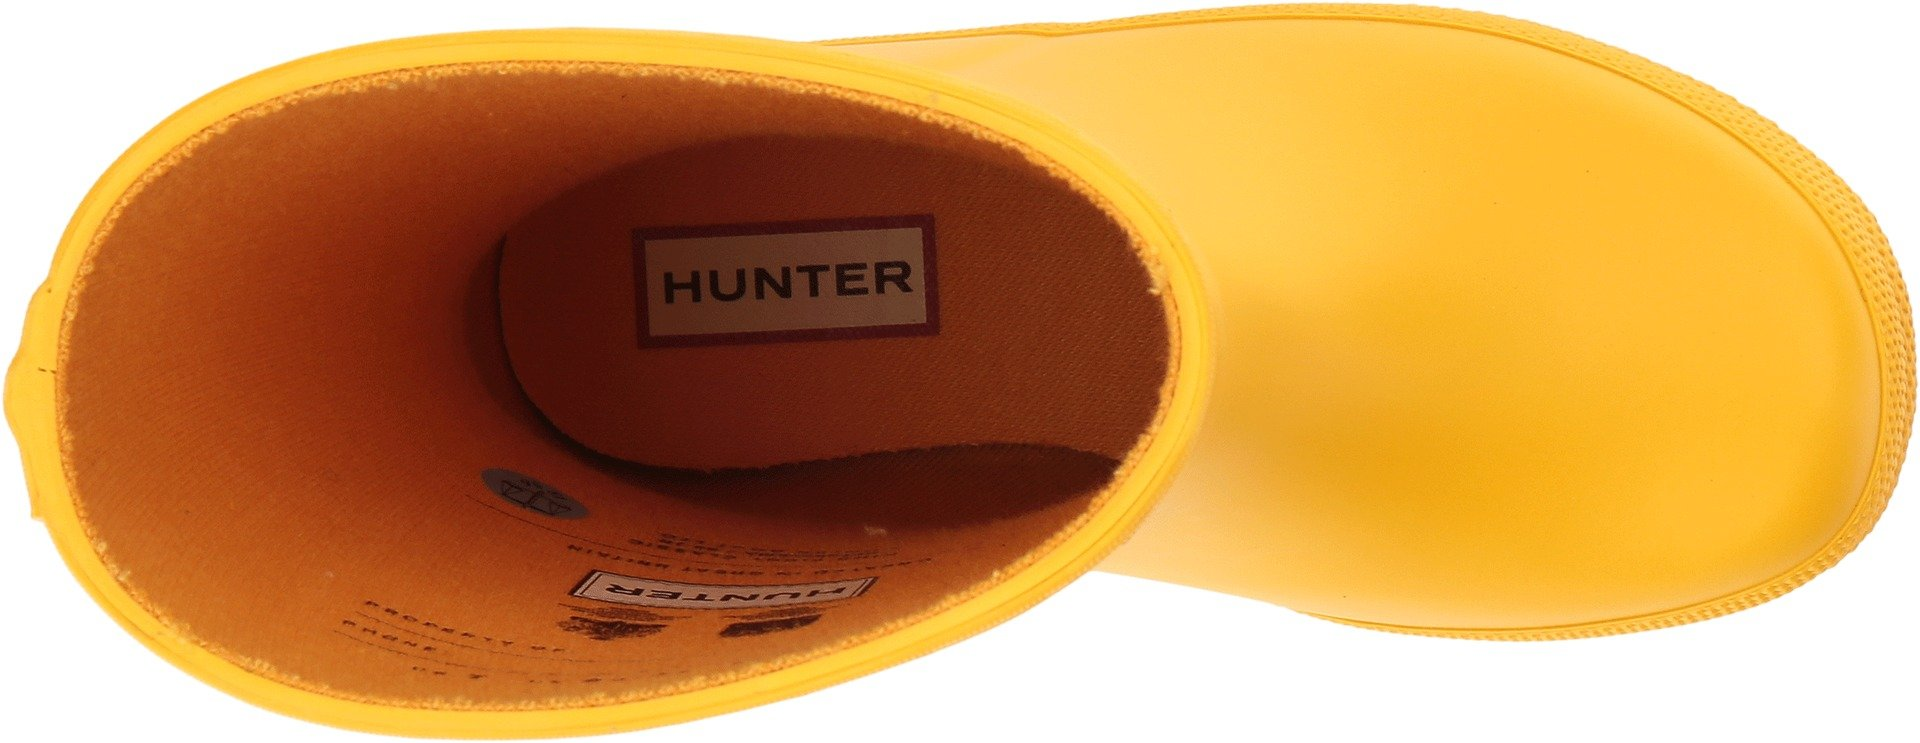 Hunter Kids Unisex First Classic (Toddler/Little Kid) Yellow 6 M US Toddler by Hunter Kids (Image #2)